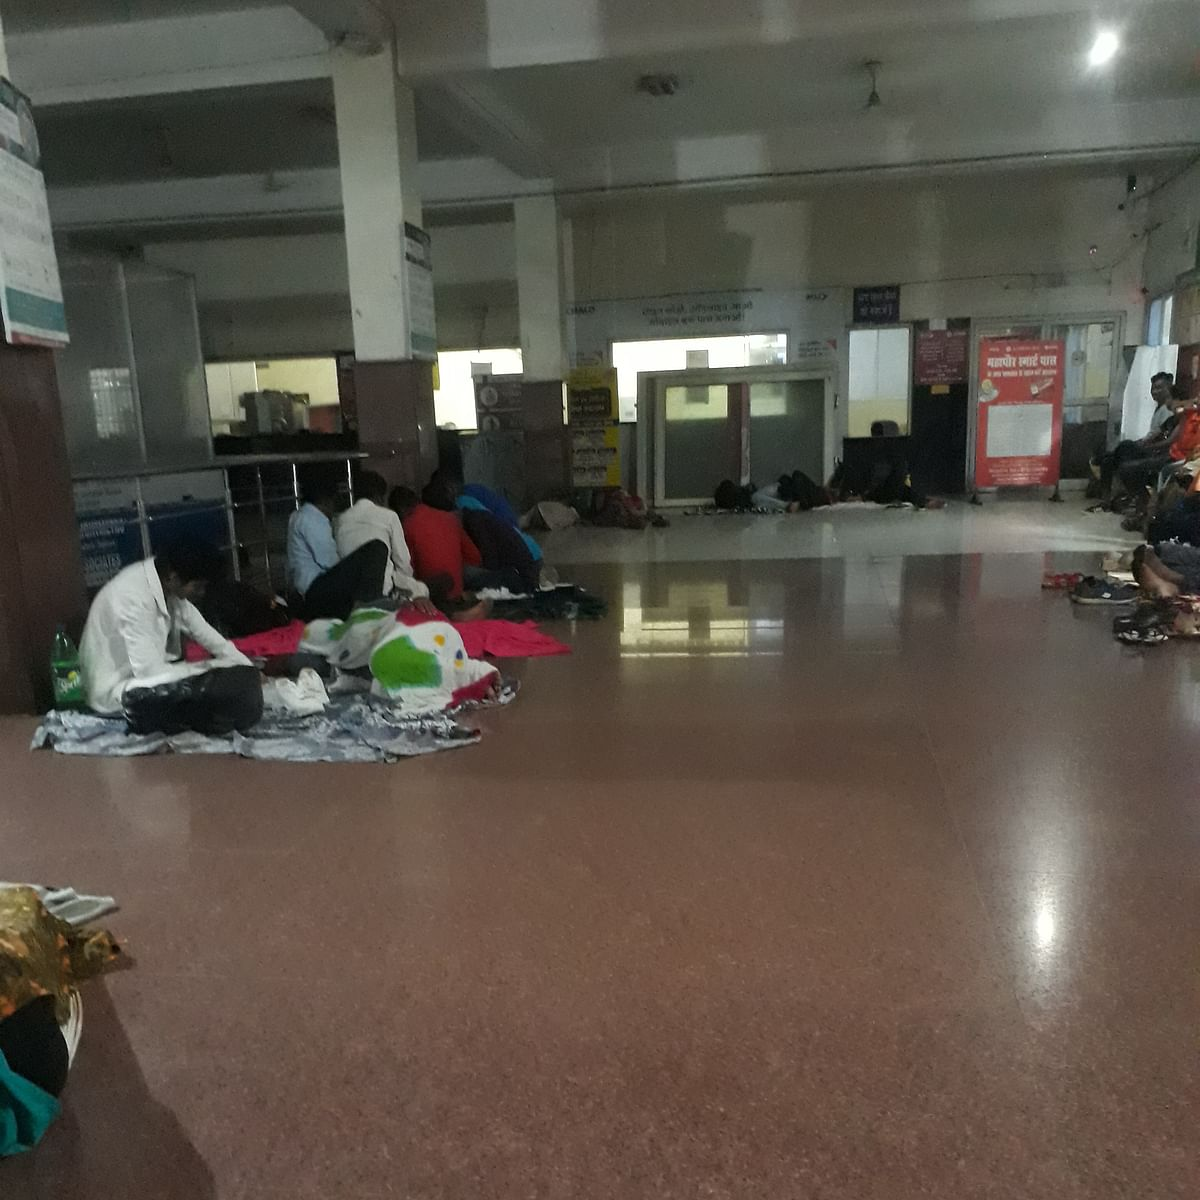 NEET 2020: Students, families sleep on floor amid Covid spread in Bhopal